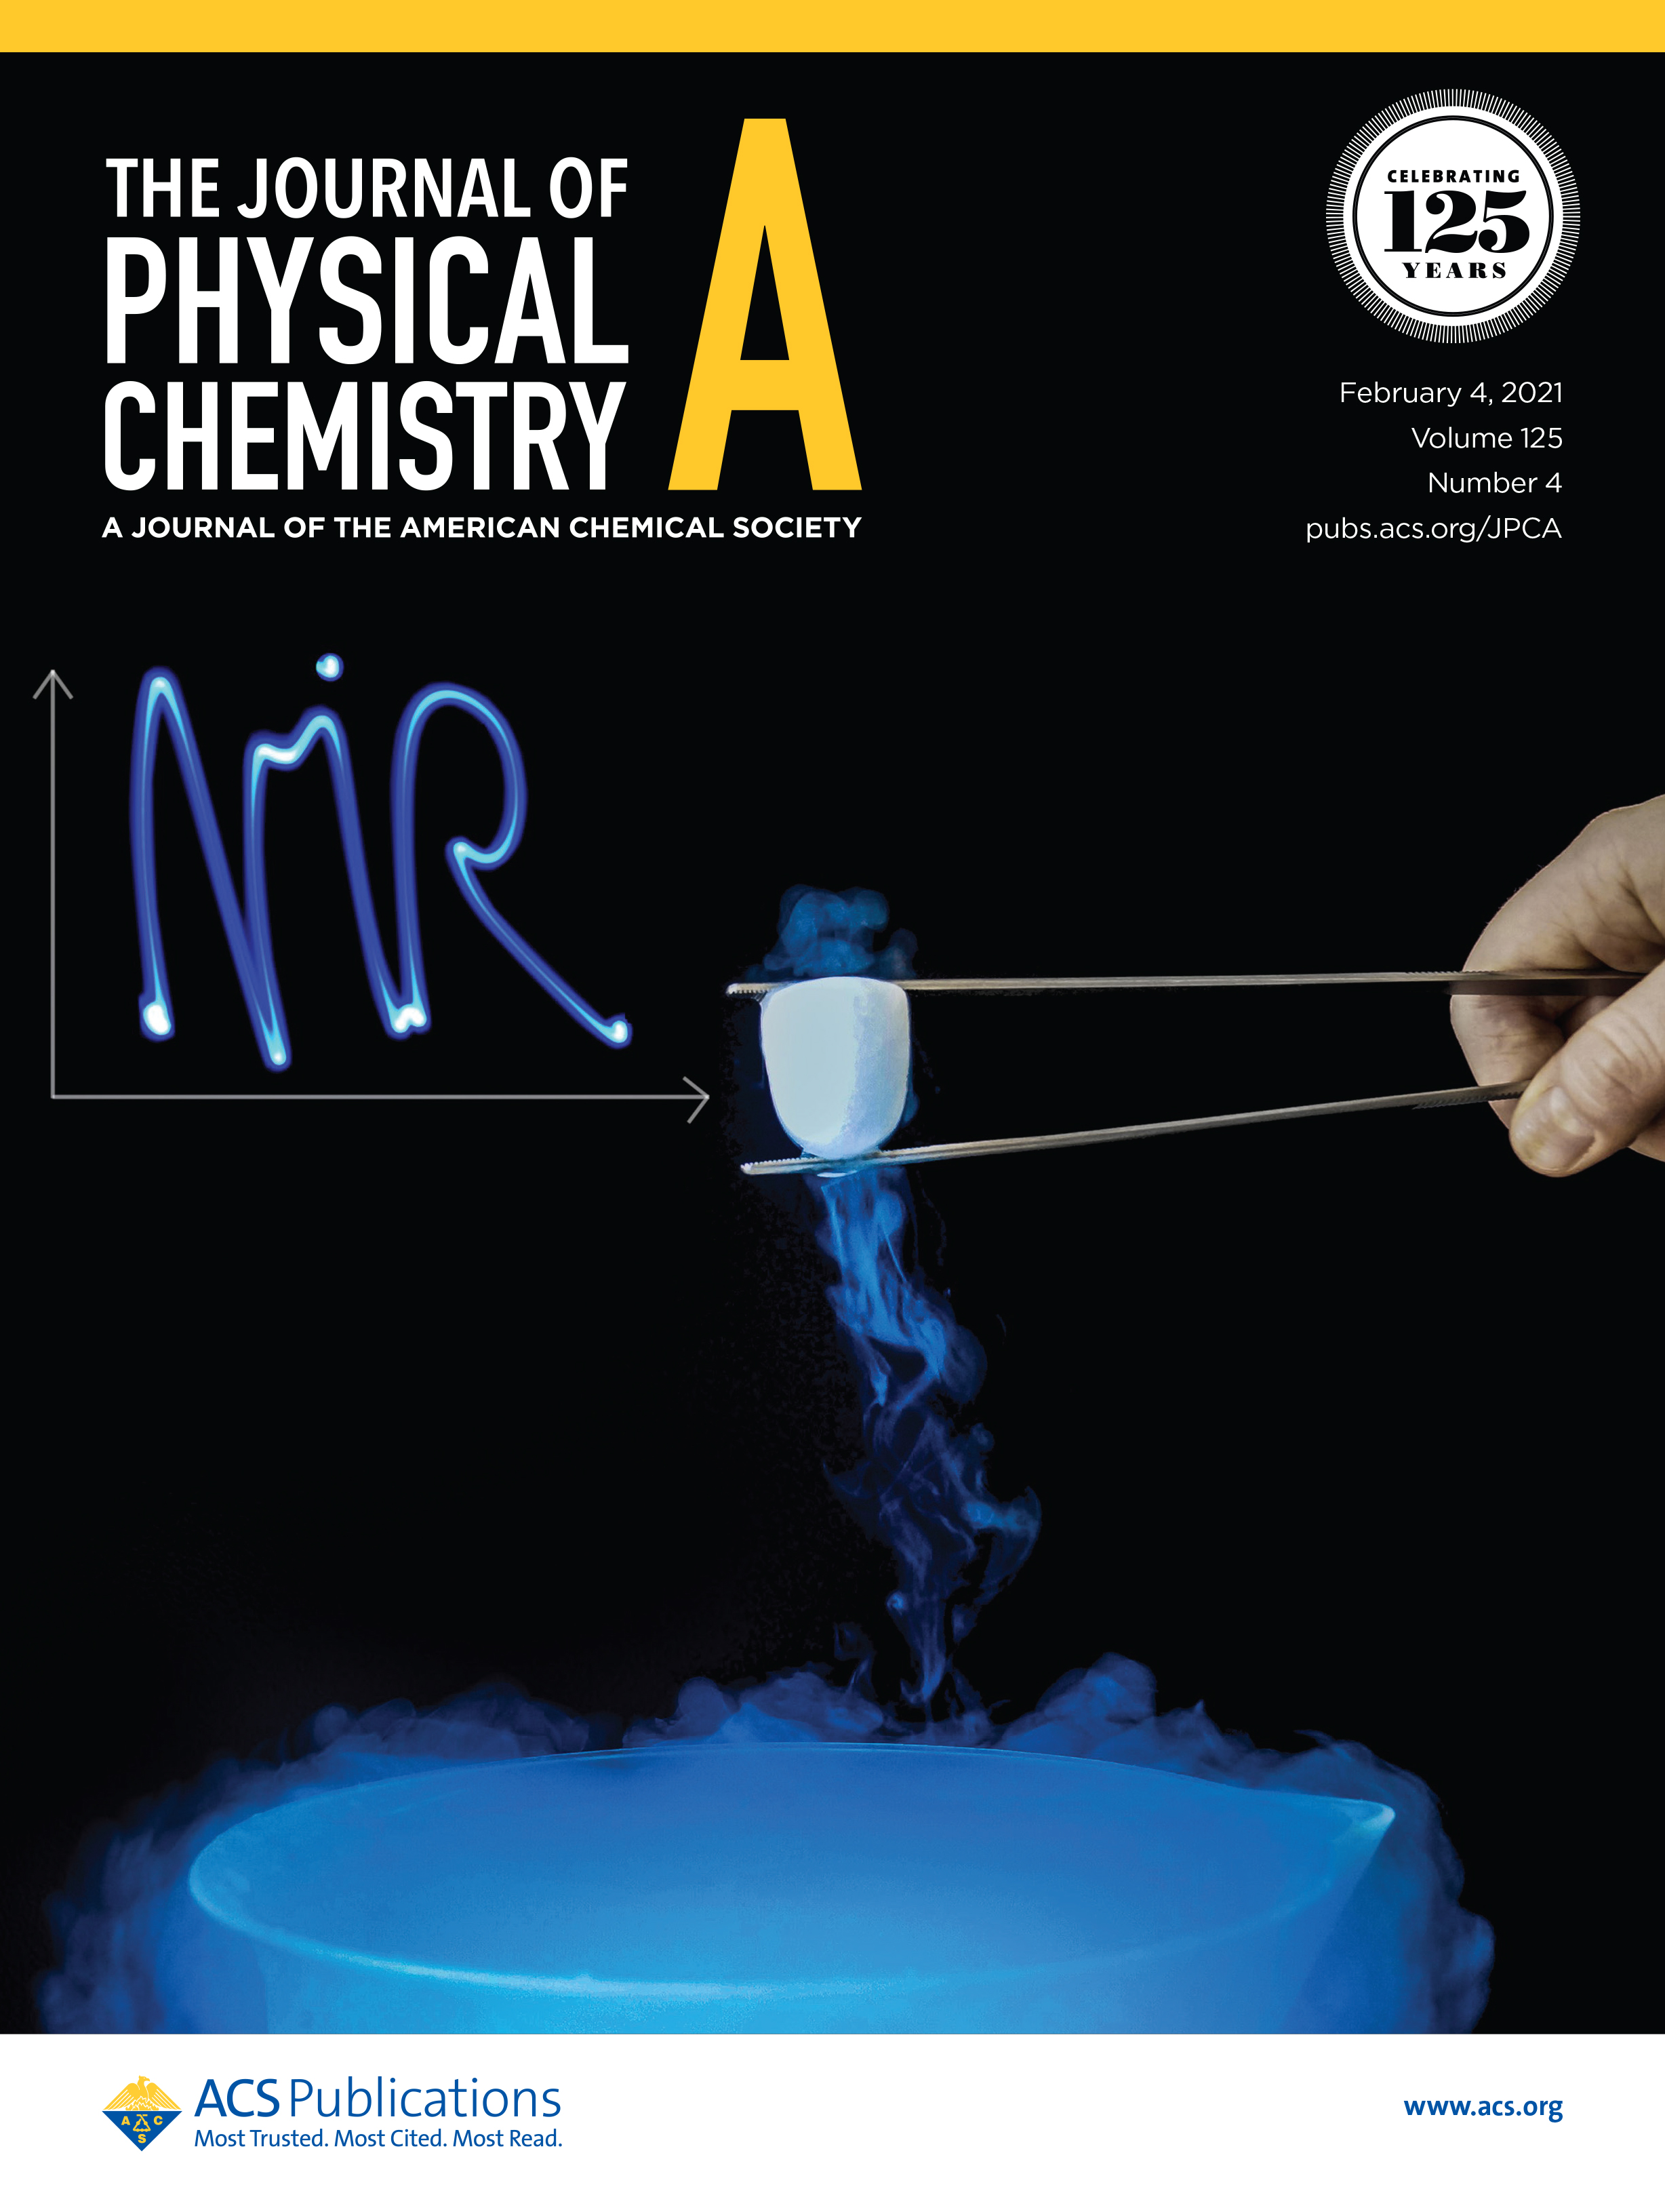 Cover J. Phys. Chem. A 125 (2021) Issue 4